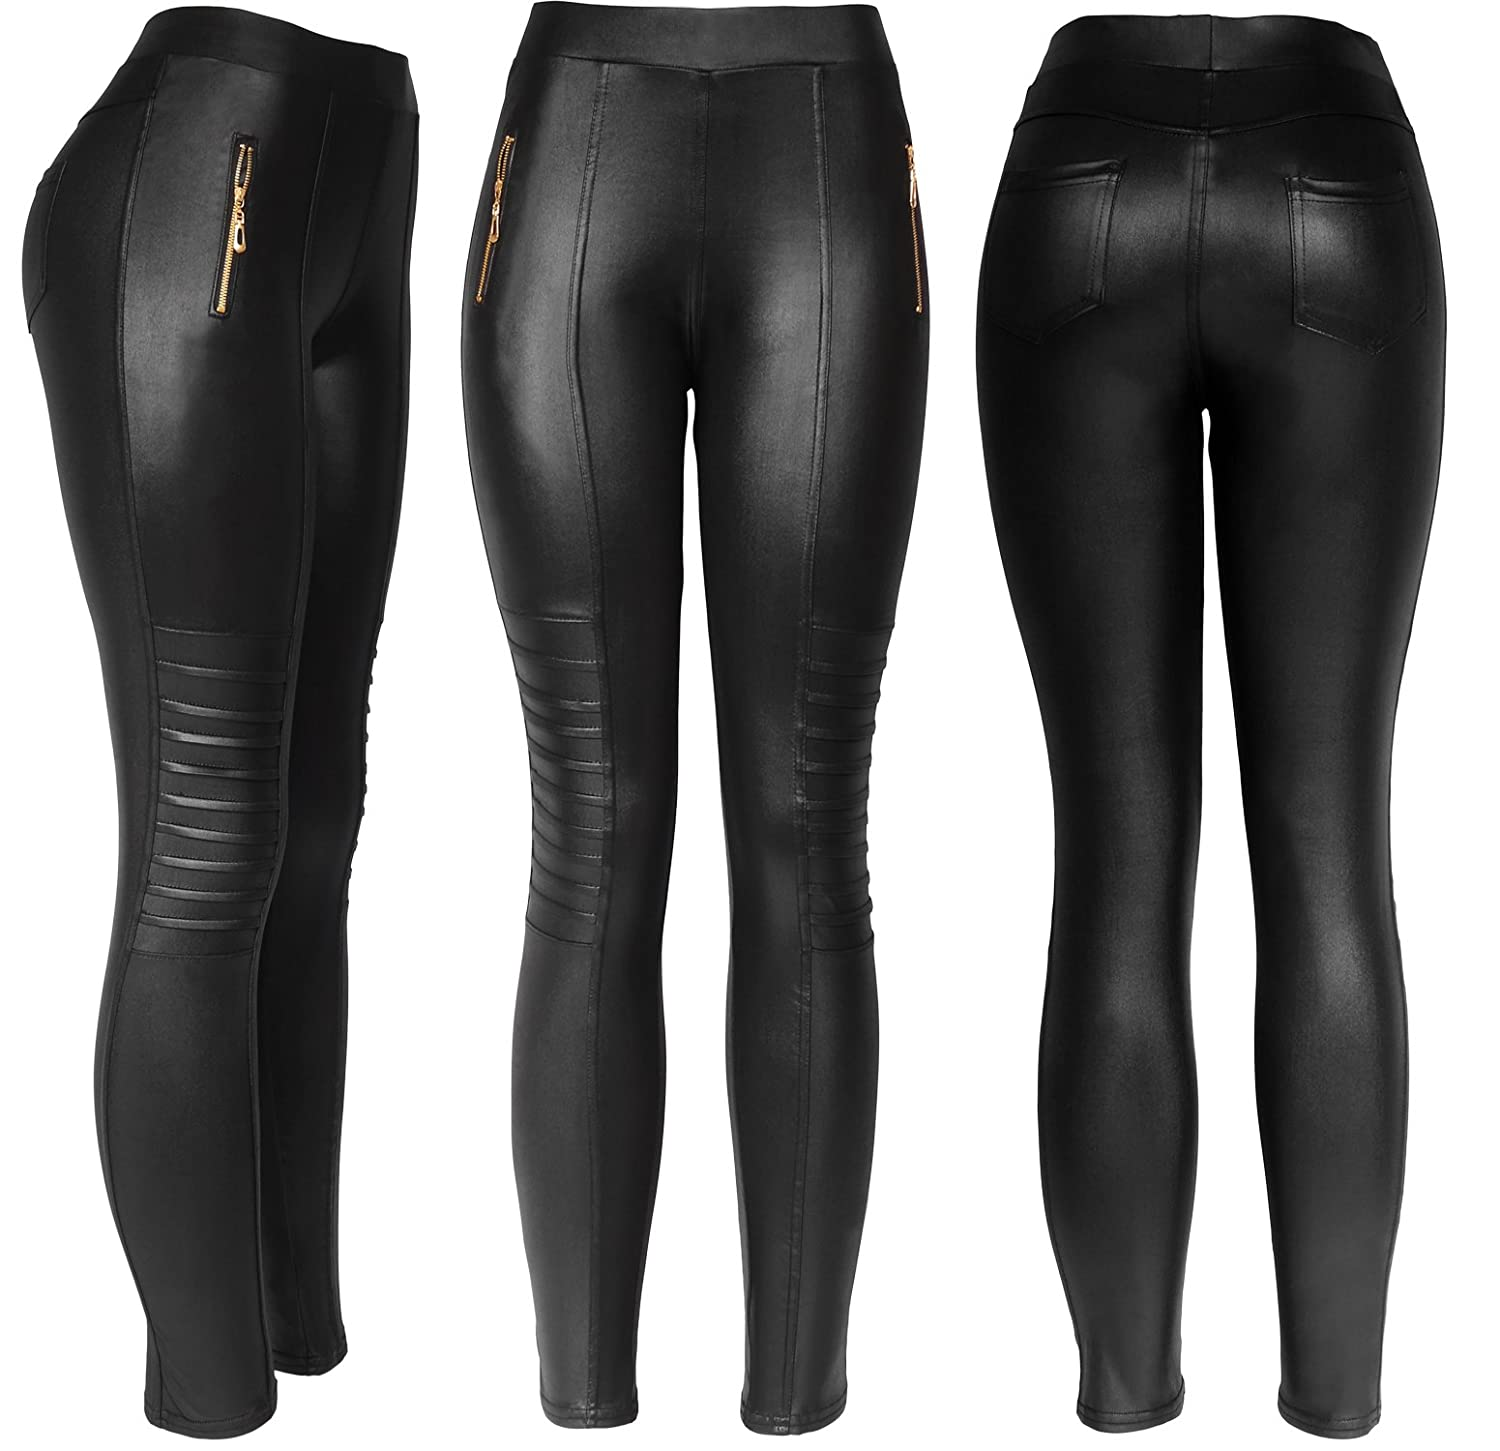 604382a9bc3b9 KMystic Sexy Faux Leather Designs Leggings at Amazon Women's Clothing store: